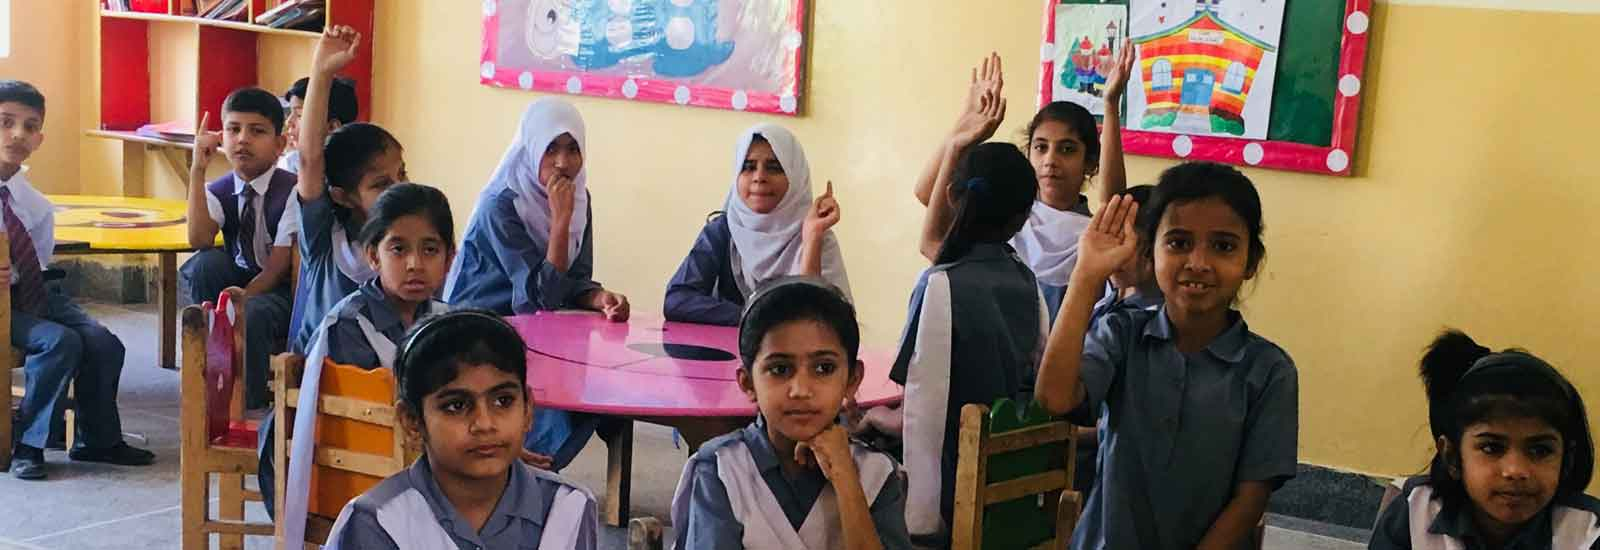 Education for all: How a Pakistani-Canadian is transforming lives in Karachi